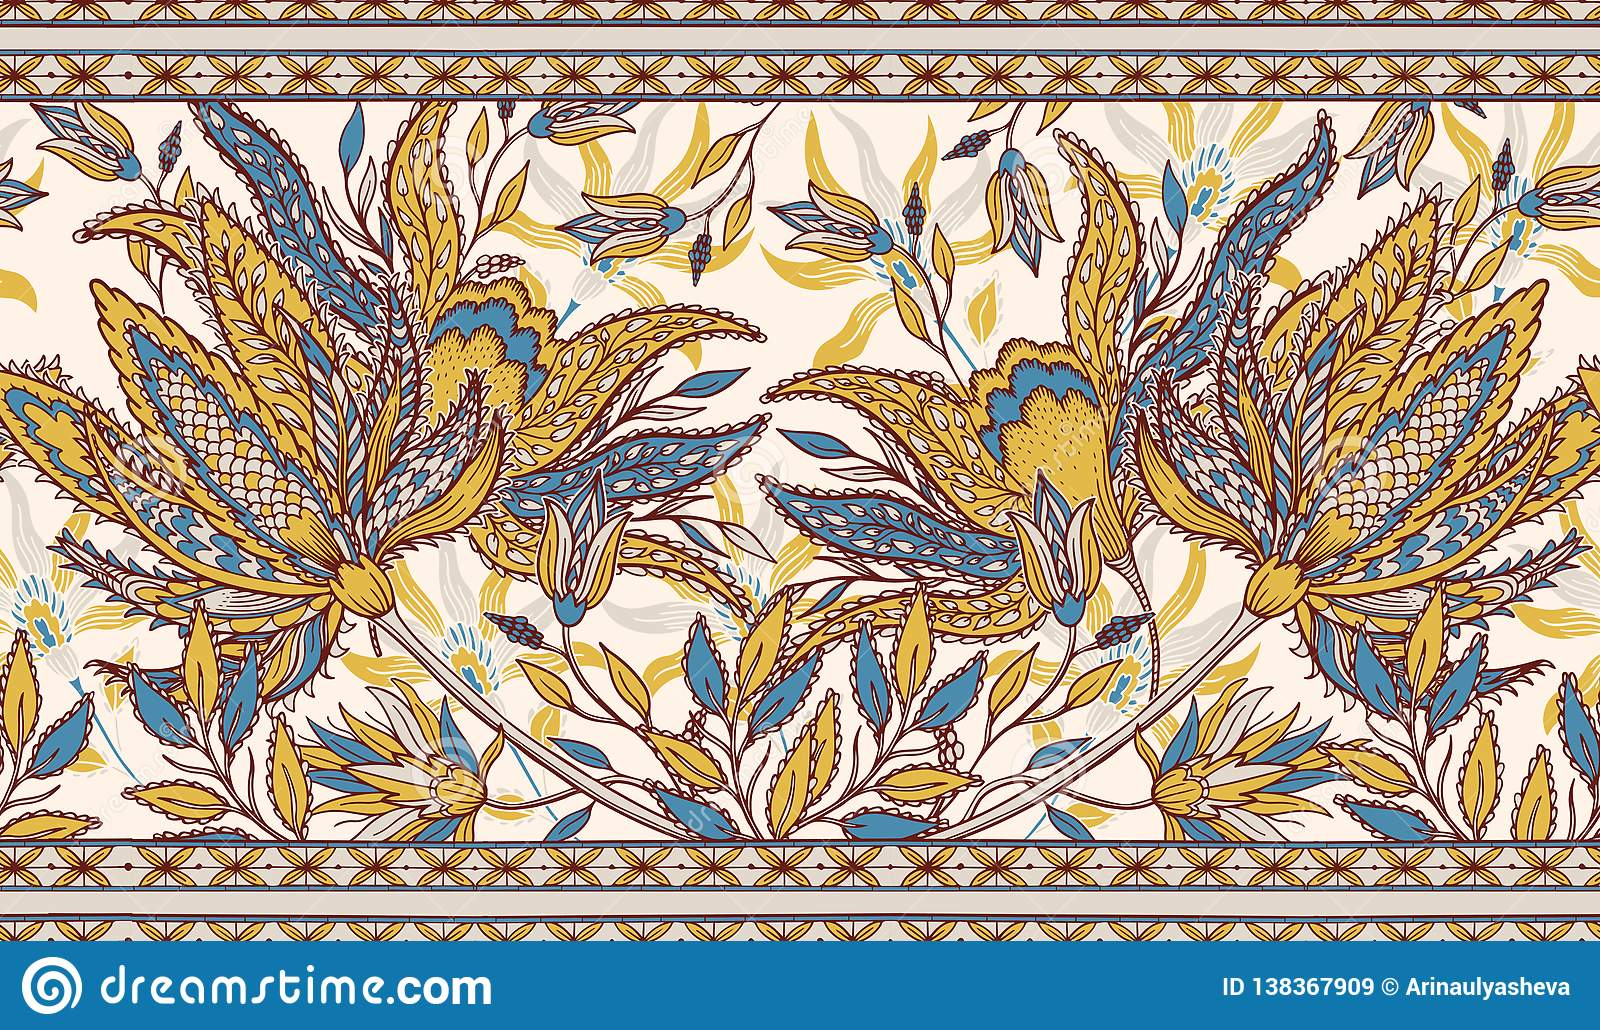 Paisley Ethnic Floral Background Stylized Flowers Plants Design For Home Decor Fabric Carpet Wrapping Vector Illustration